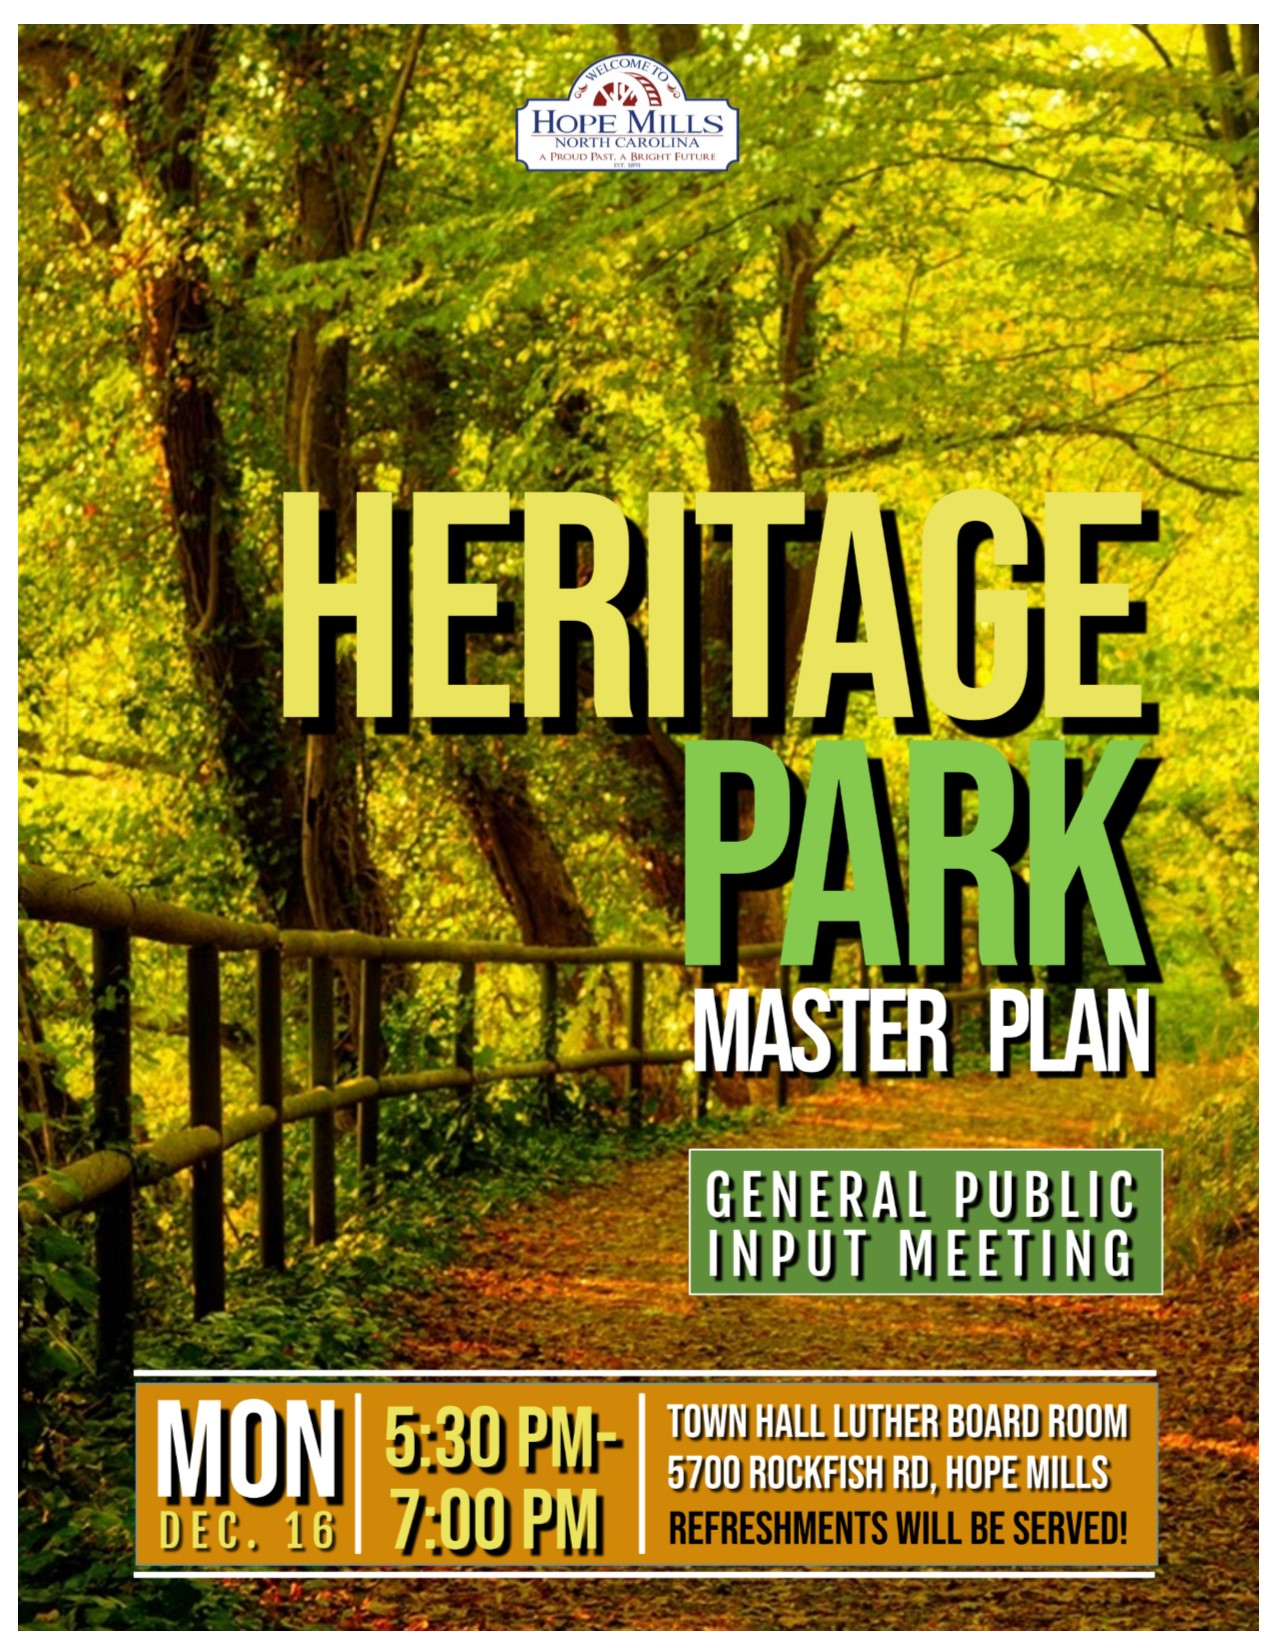 Heritage Park Meeting Master Plan - General Public Input Meeting